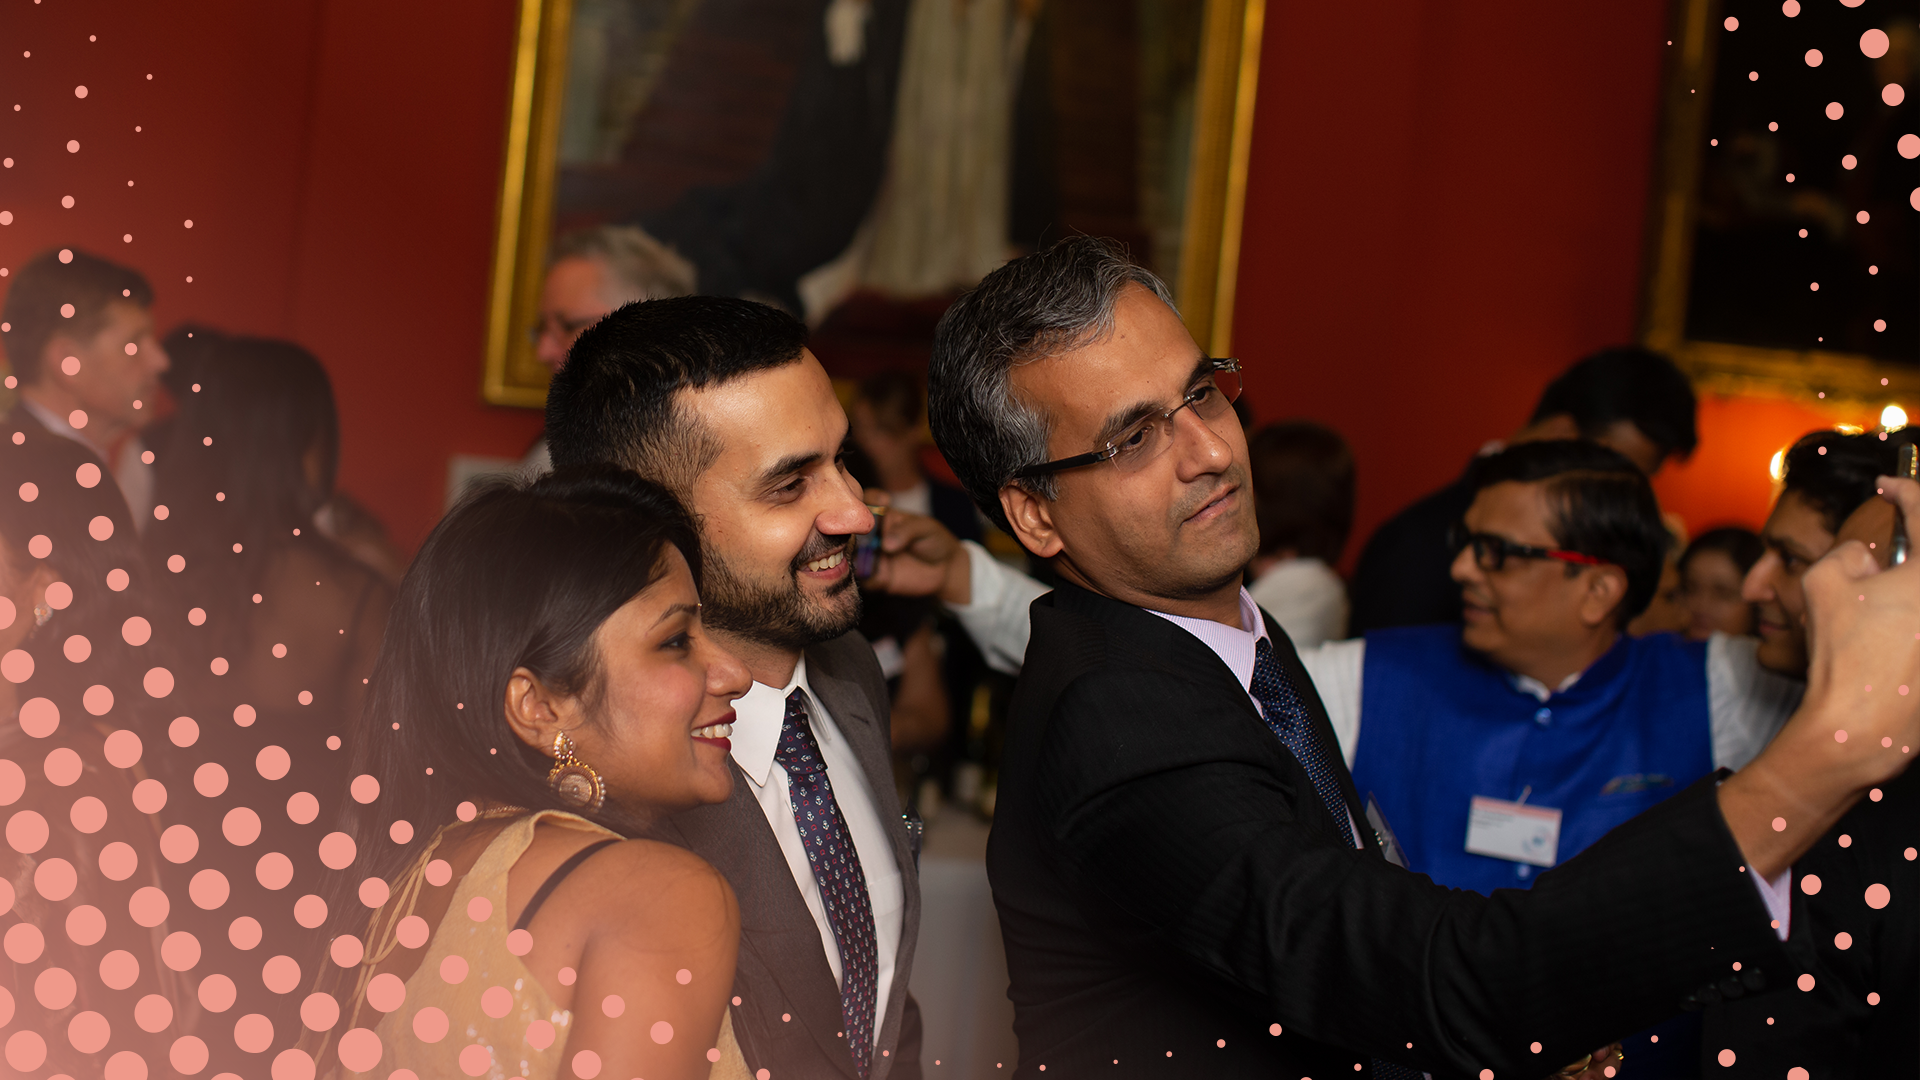 Chevening Oxford Centre for Islamic Studies Fellowship (OCIS) and OCIS Abdullah Gül Fellowship